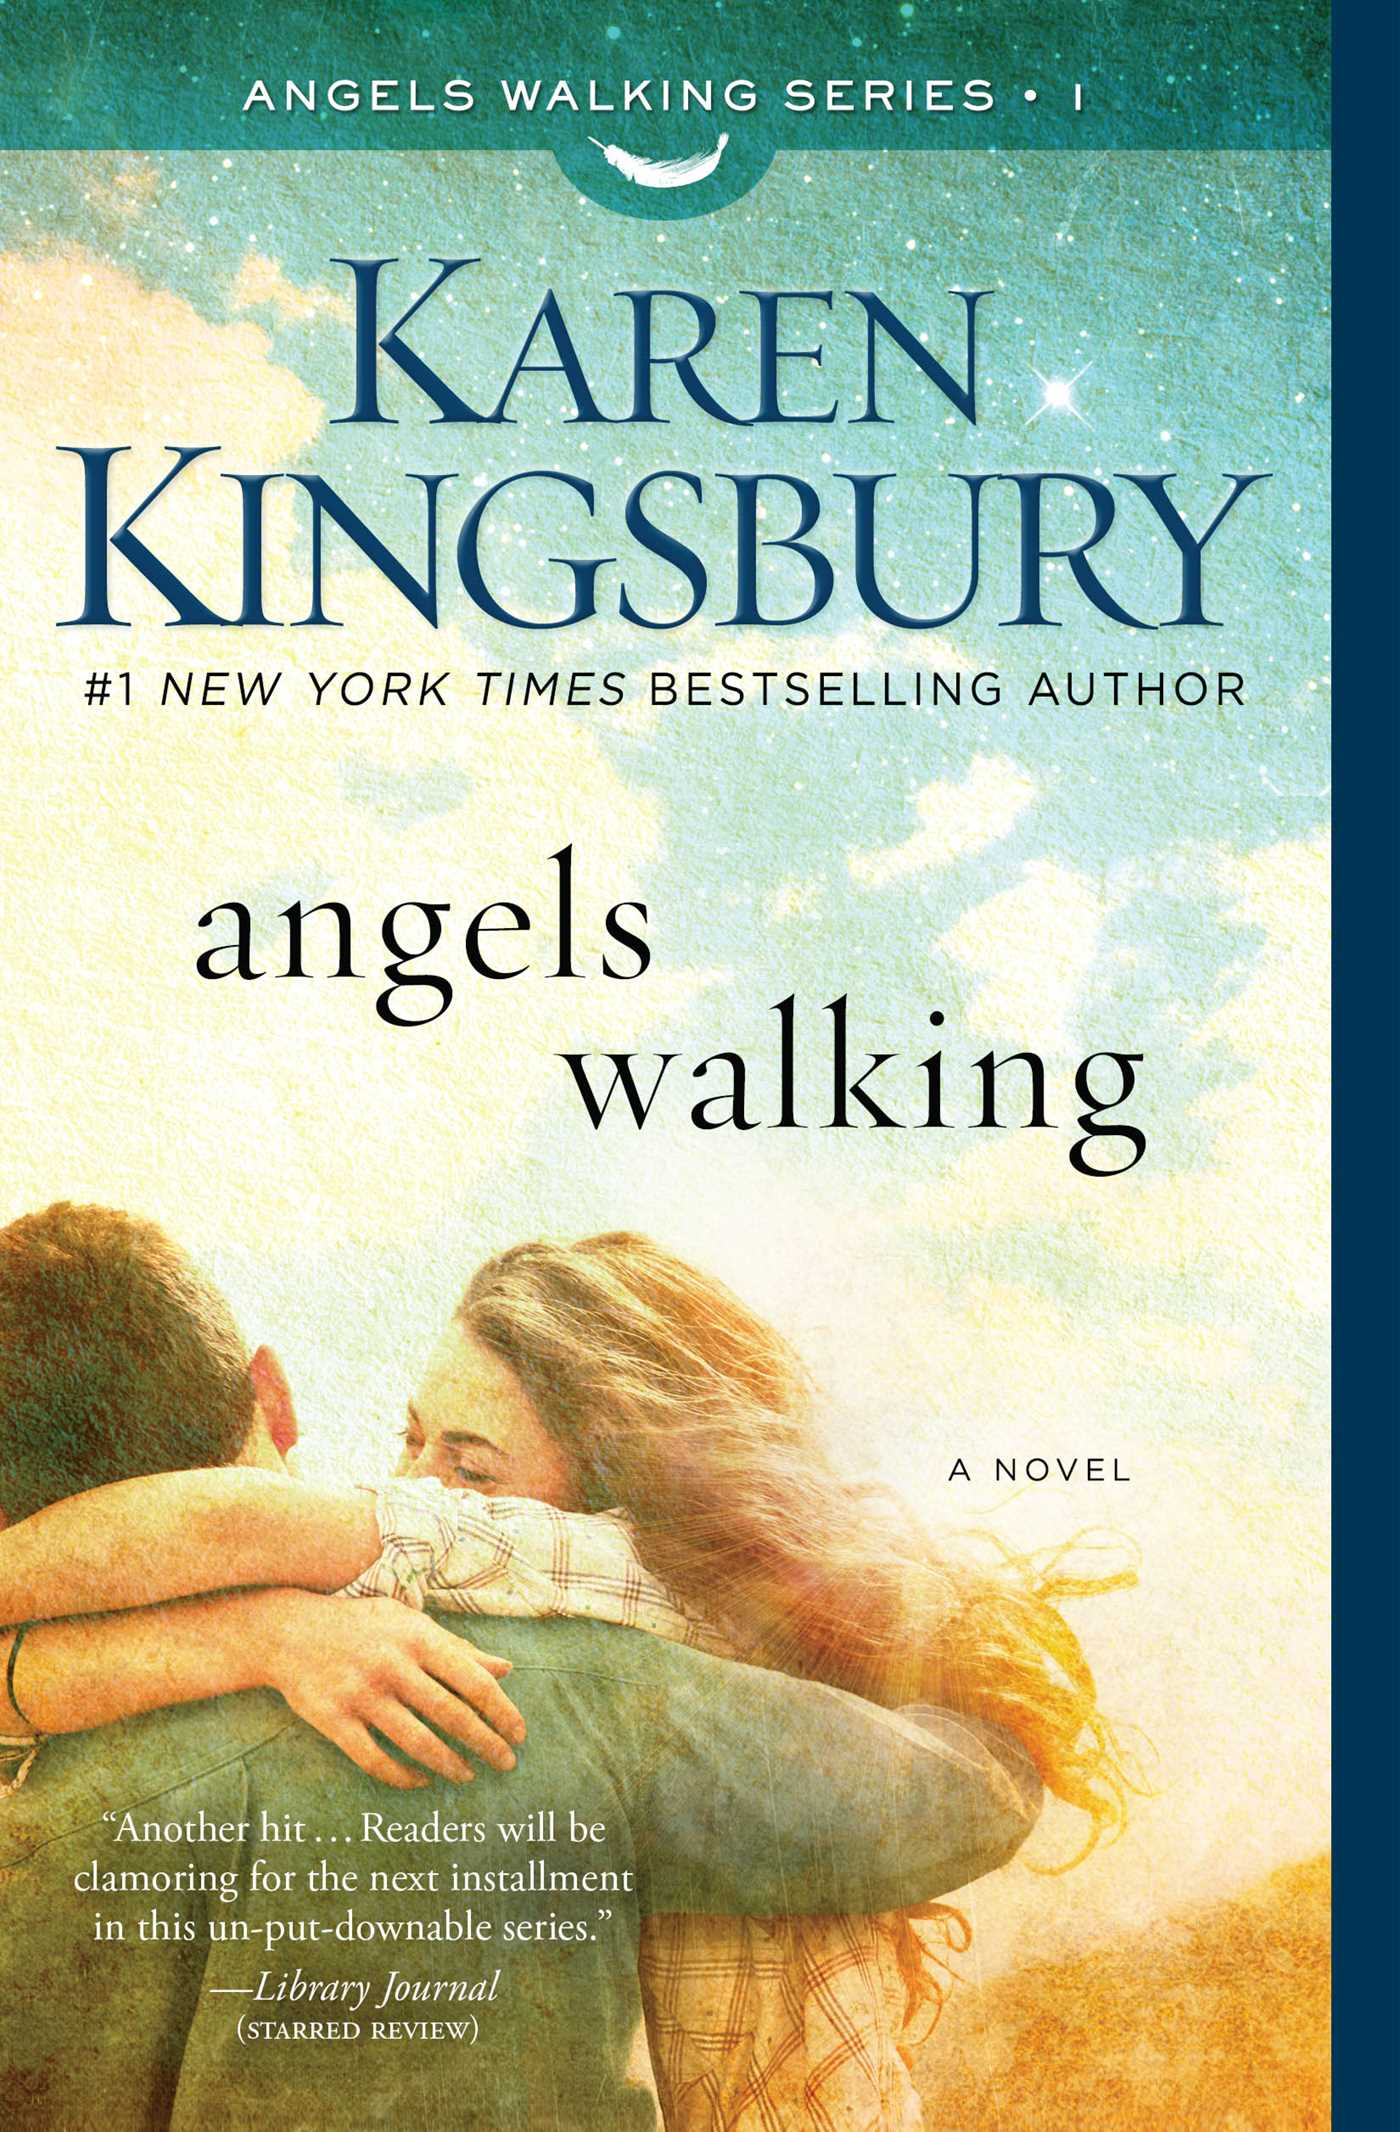 Angels-walking-9781451687491_hr